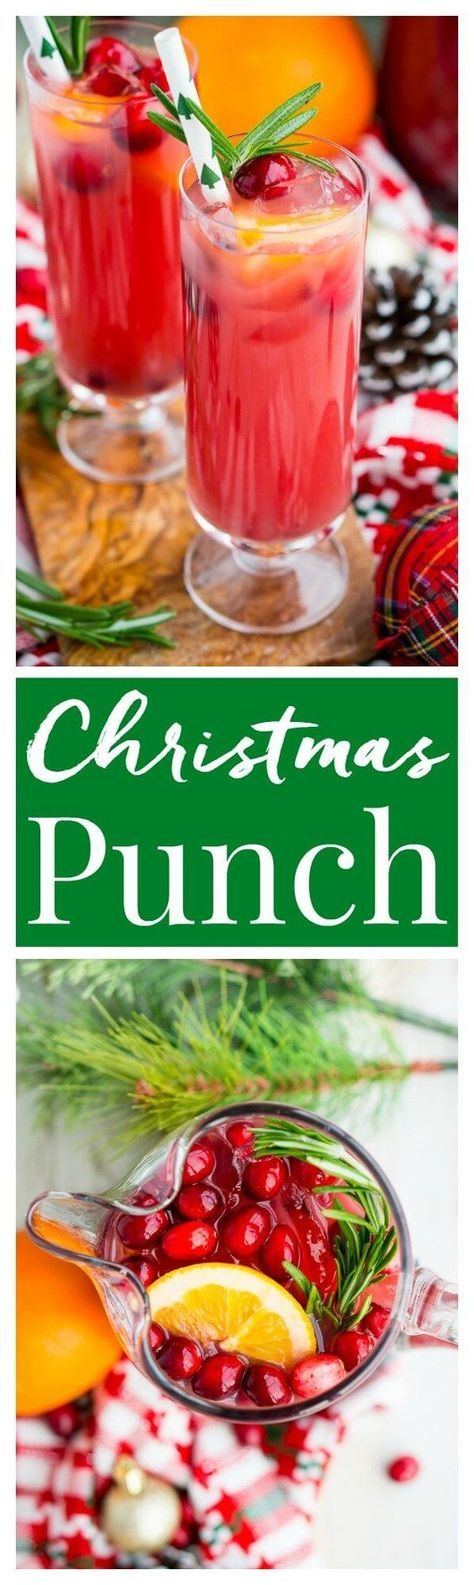 Christmas Punch is an easy and delicious holiday party drink packed with fruits like cranberries, oranges, and pomegranates. Keep it non-alcoholic or add rum or vodka for extra holiday spirit!